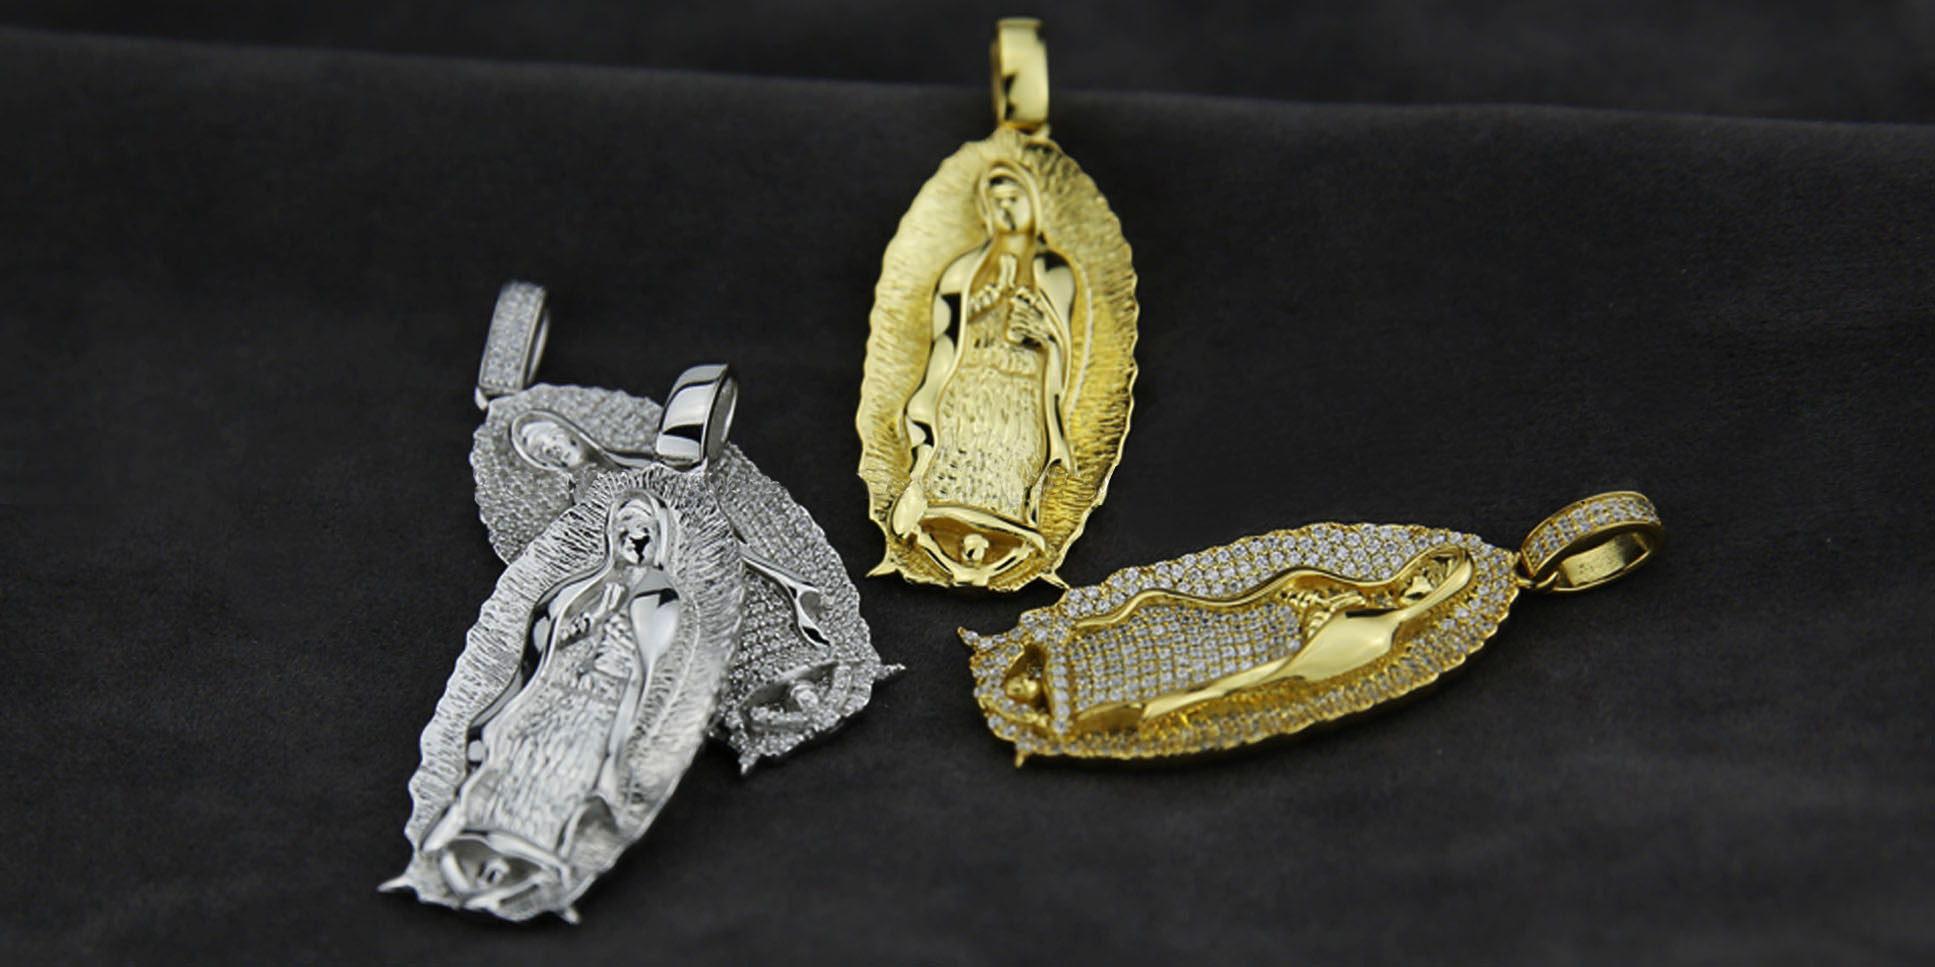 Lady of Guadalupe Virgin Mary pendant necklace and chain